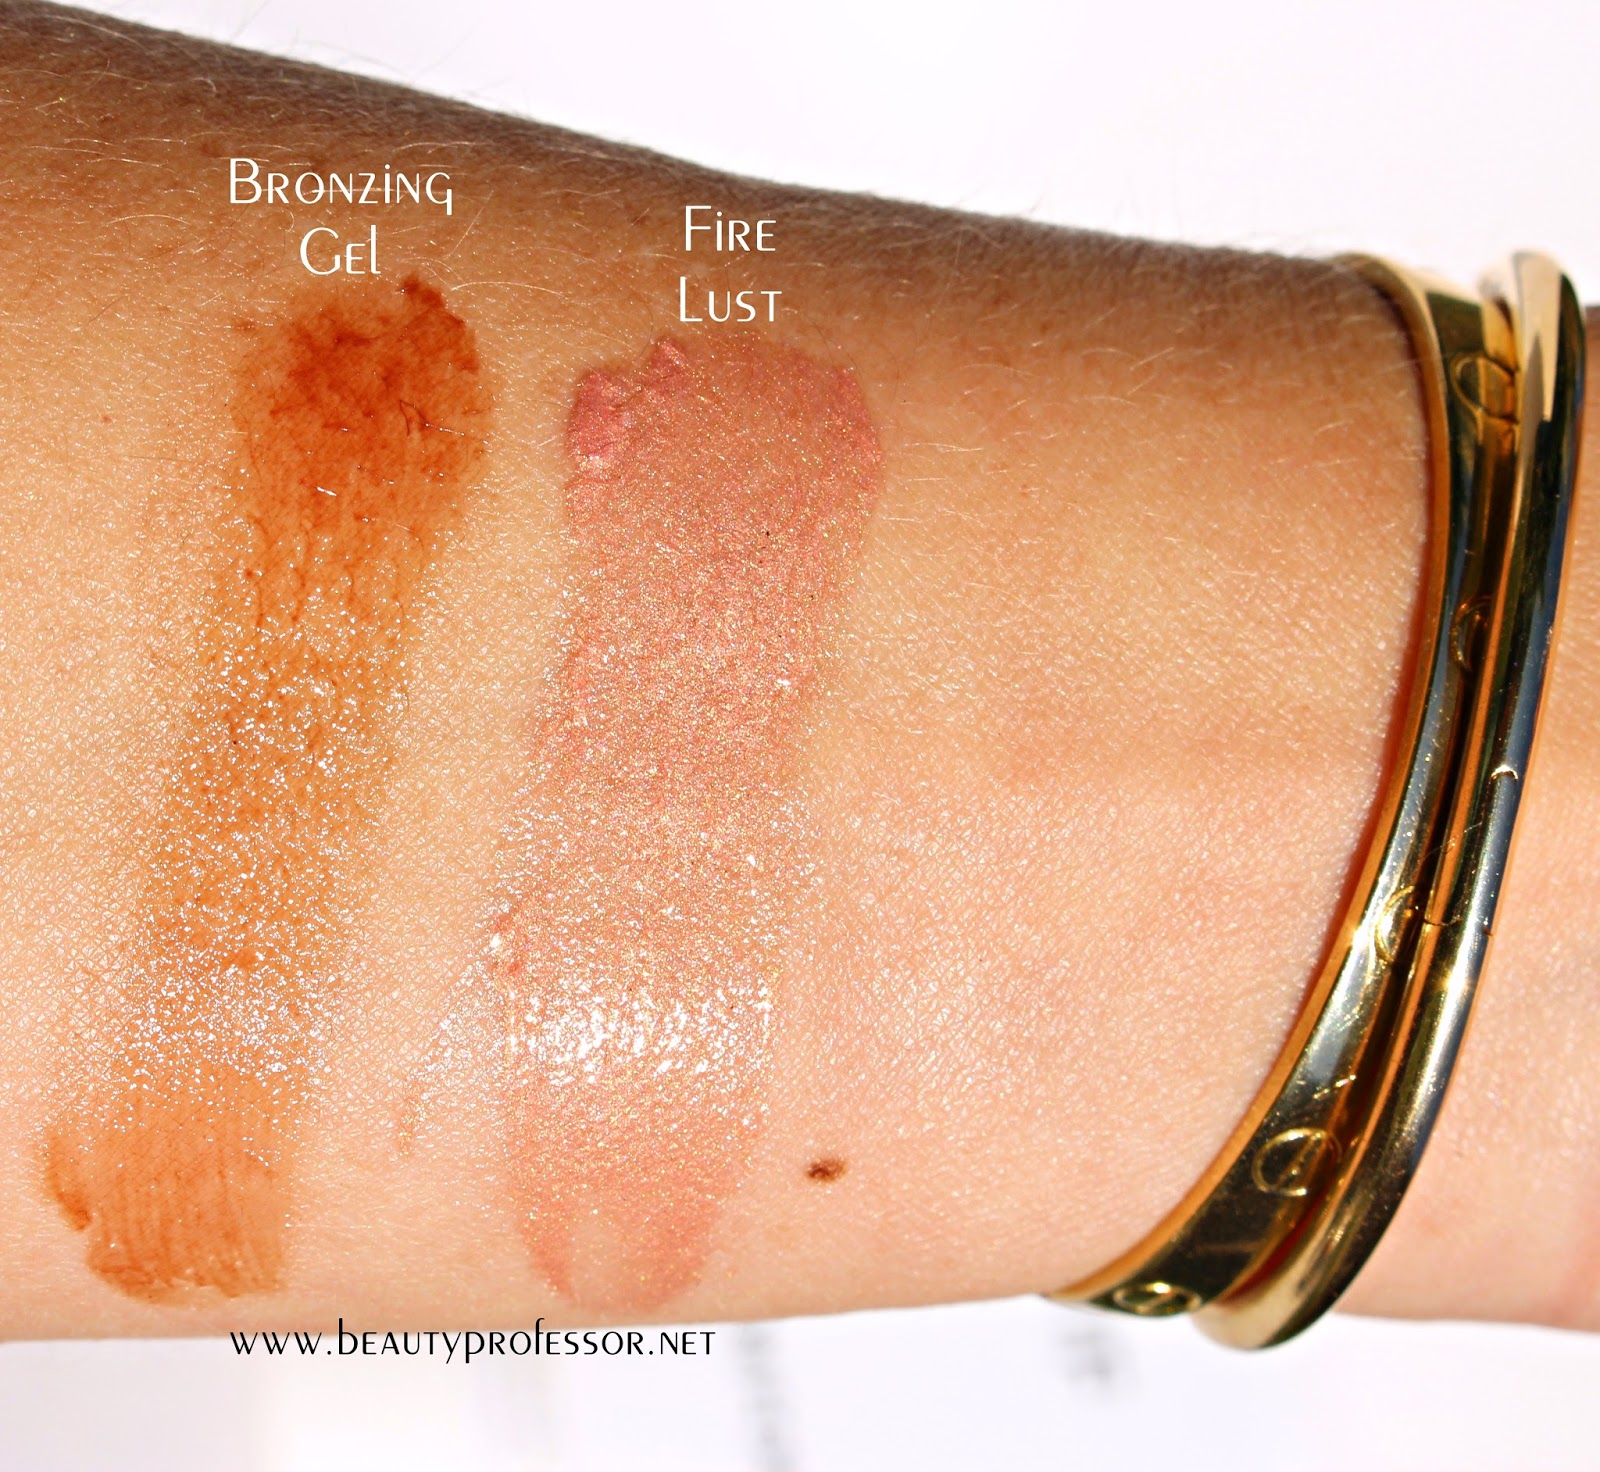 Beauty Professor The Tom Ford Soleil Collection 2017 A Sunlit 011a1a1ceilingfantt11jpg Swatches